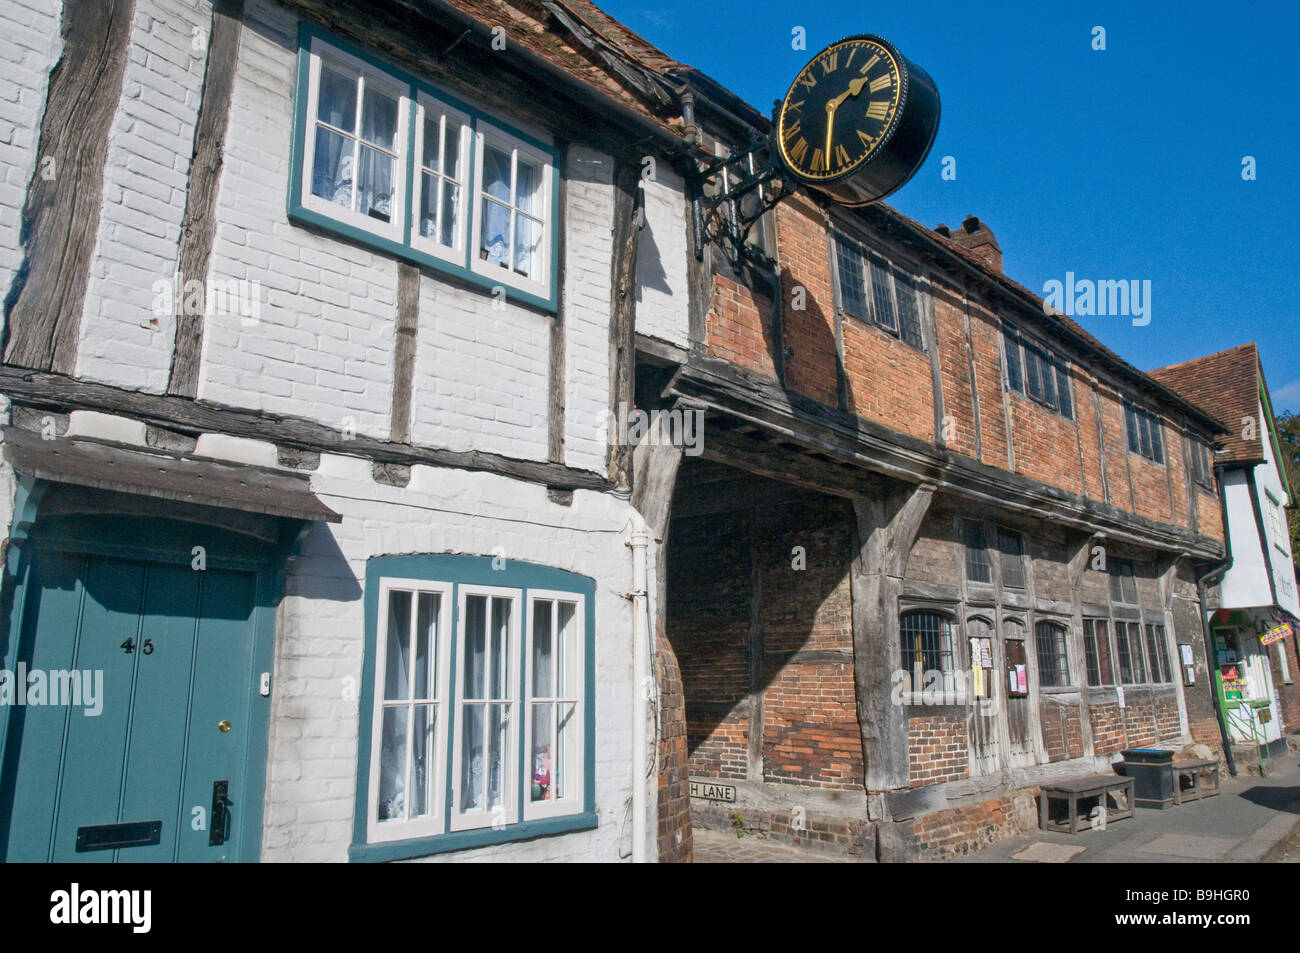 Old Buildings in the village of West Wycombe in Buckinghamshire - Stock Image